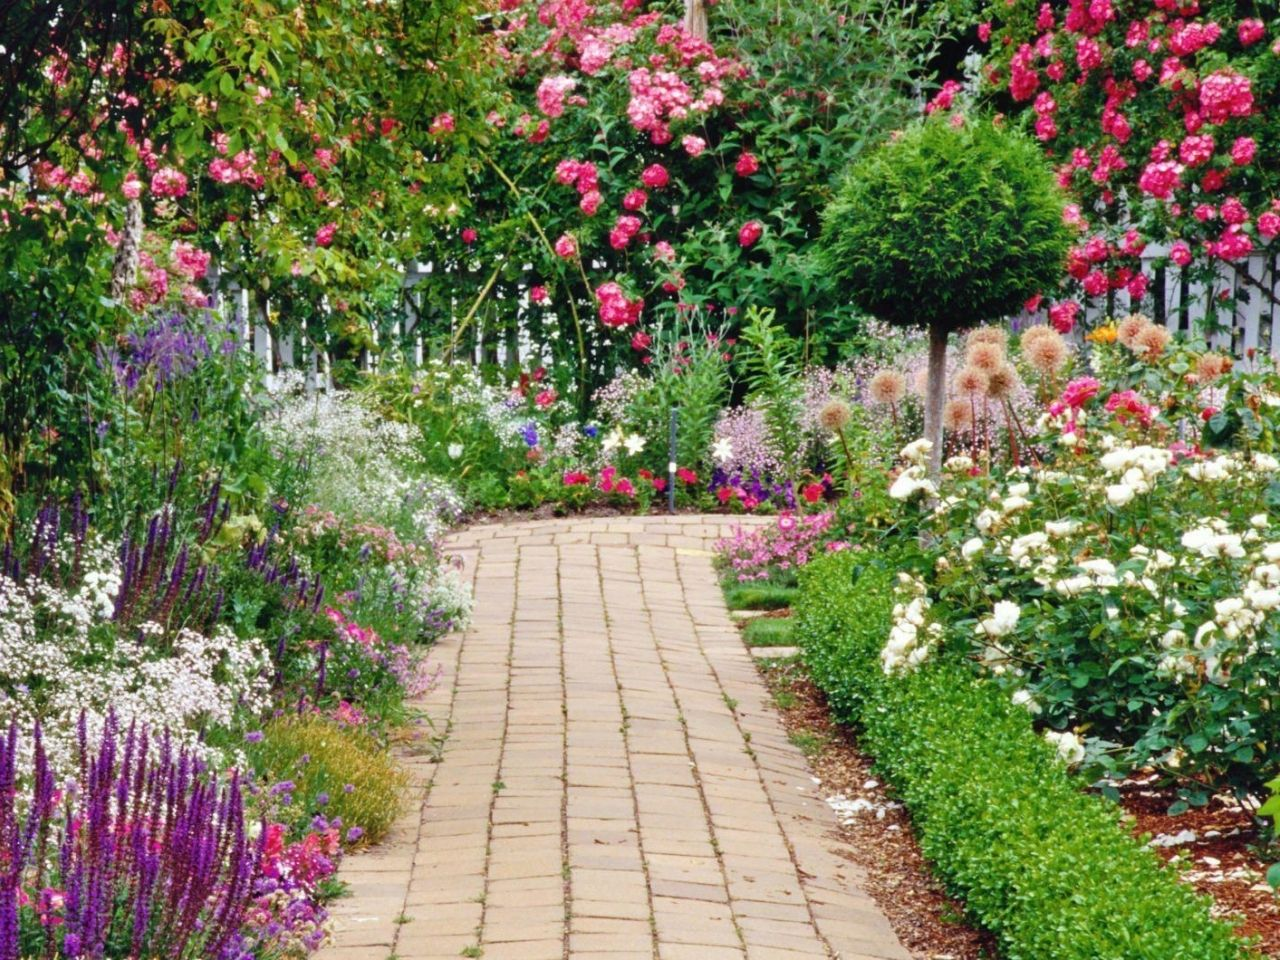 Landscape design, flower garden: brick path through a double border